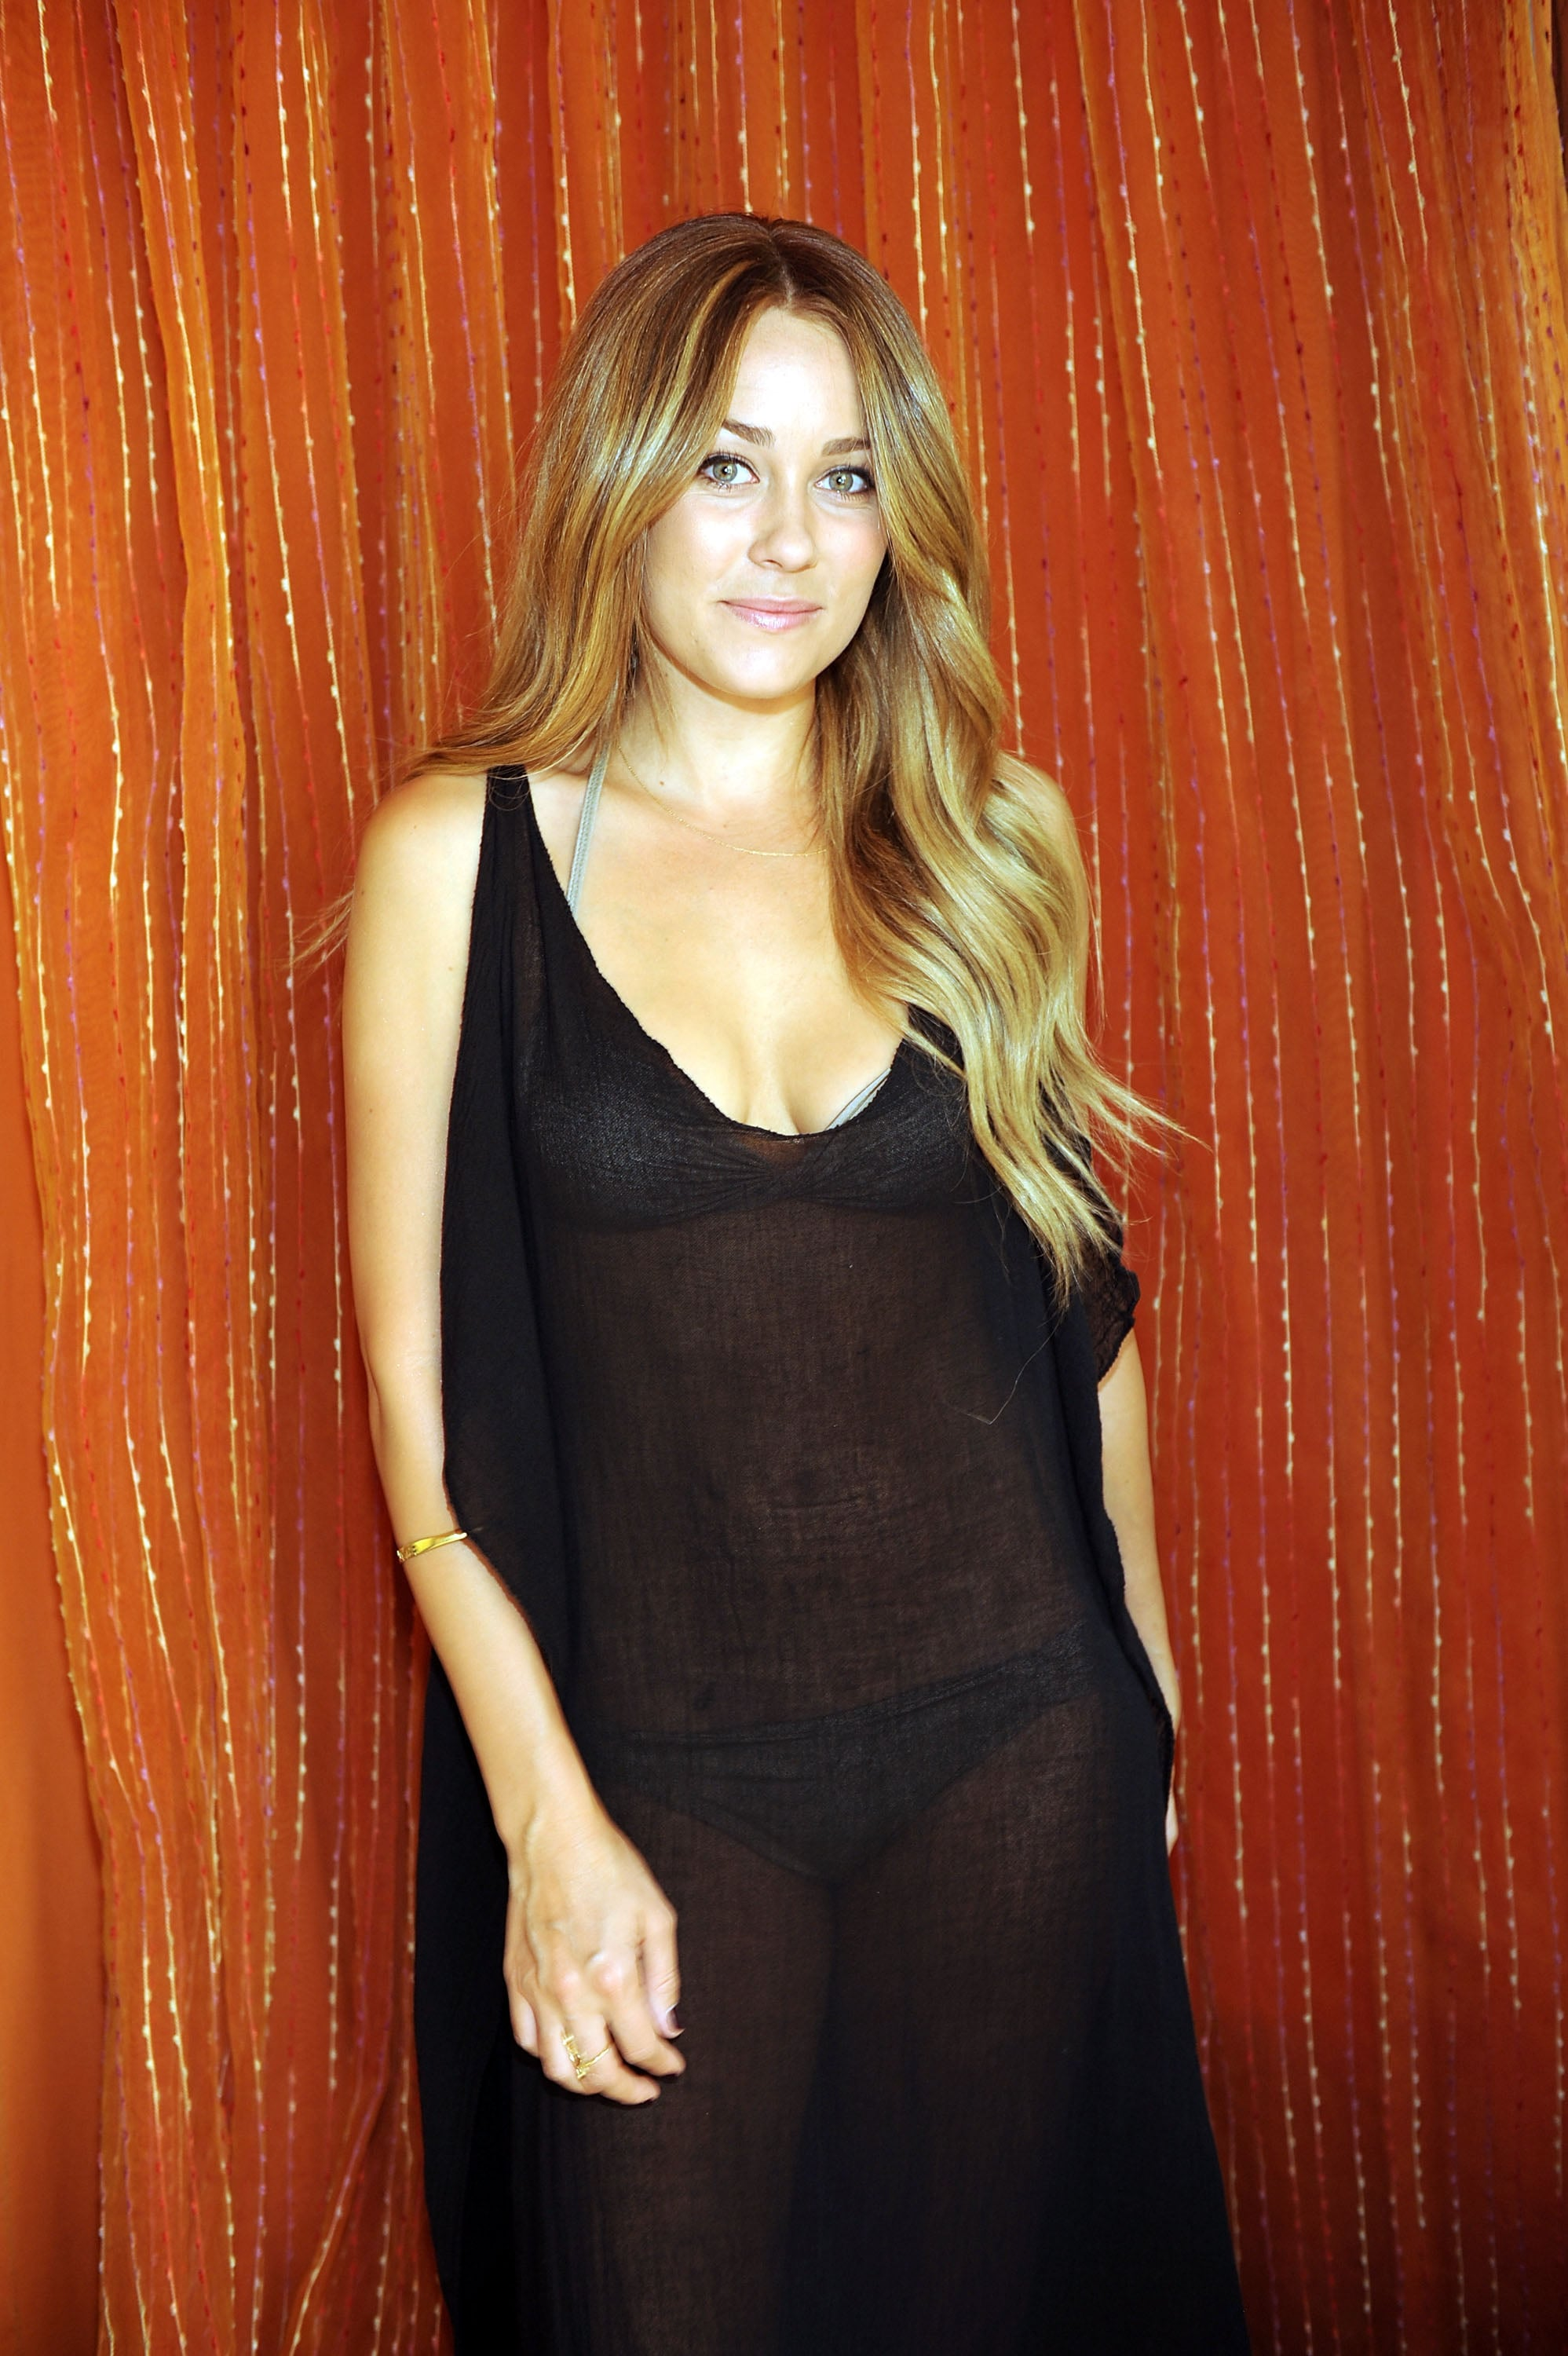 Photos Of Lauren Conrad Covering Her Bikini At Tao In Las